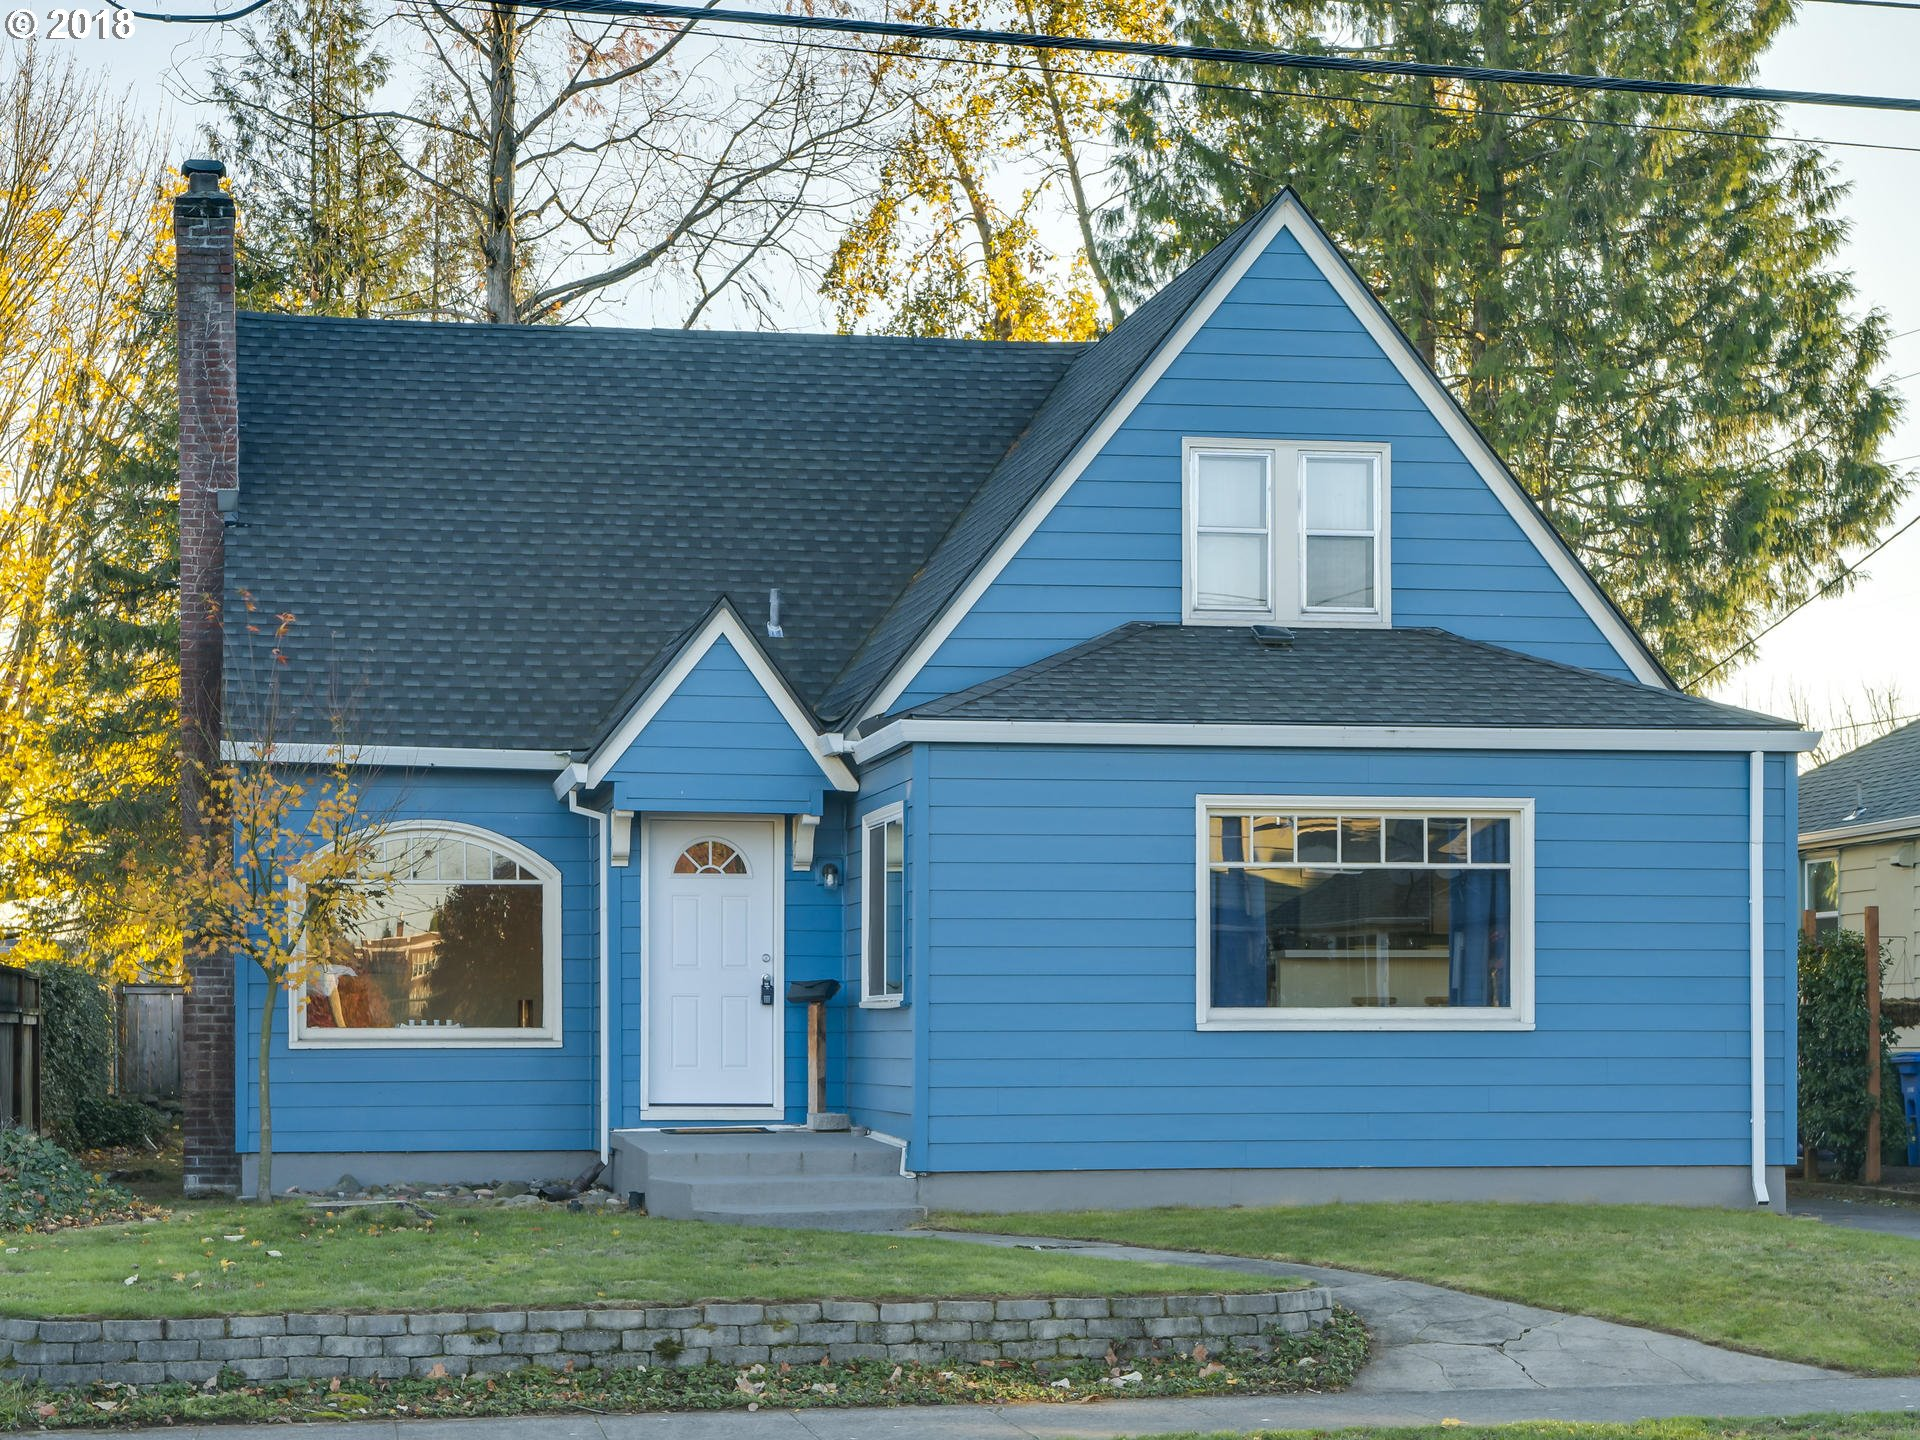 2596 sq. ft 3 bedrooms 2 bathrooms  House For Sale, Portland, OR